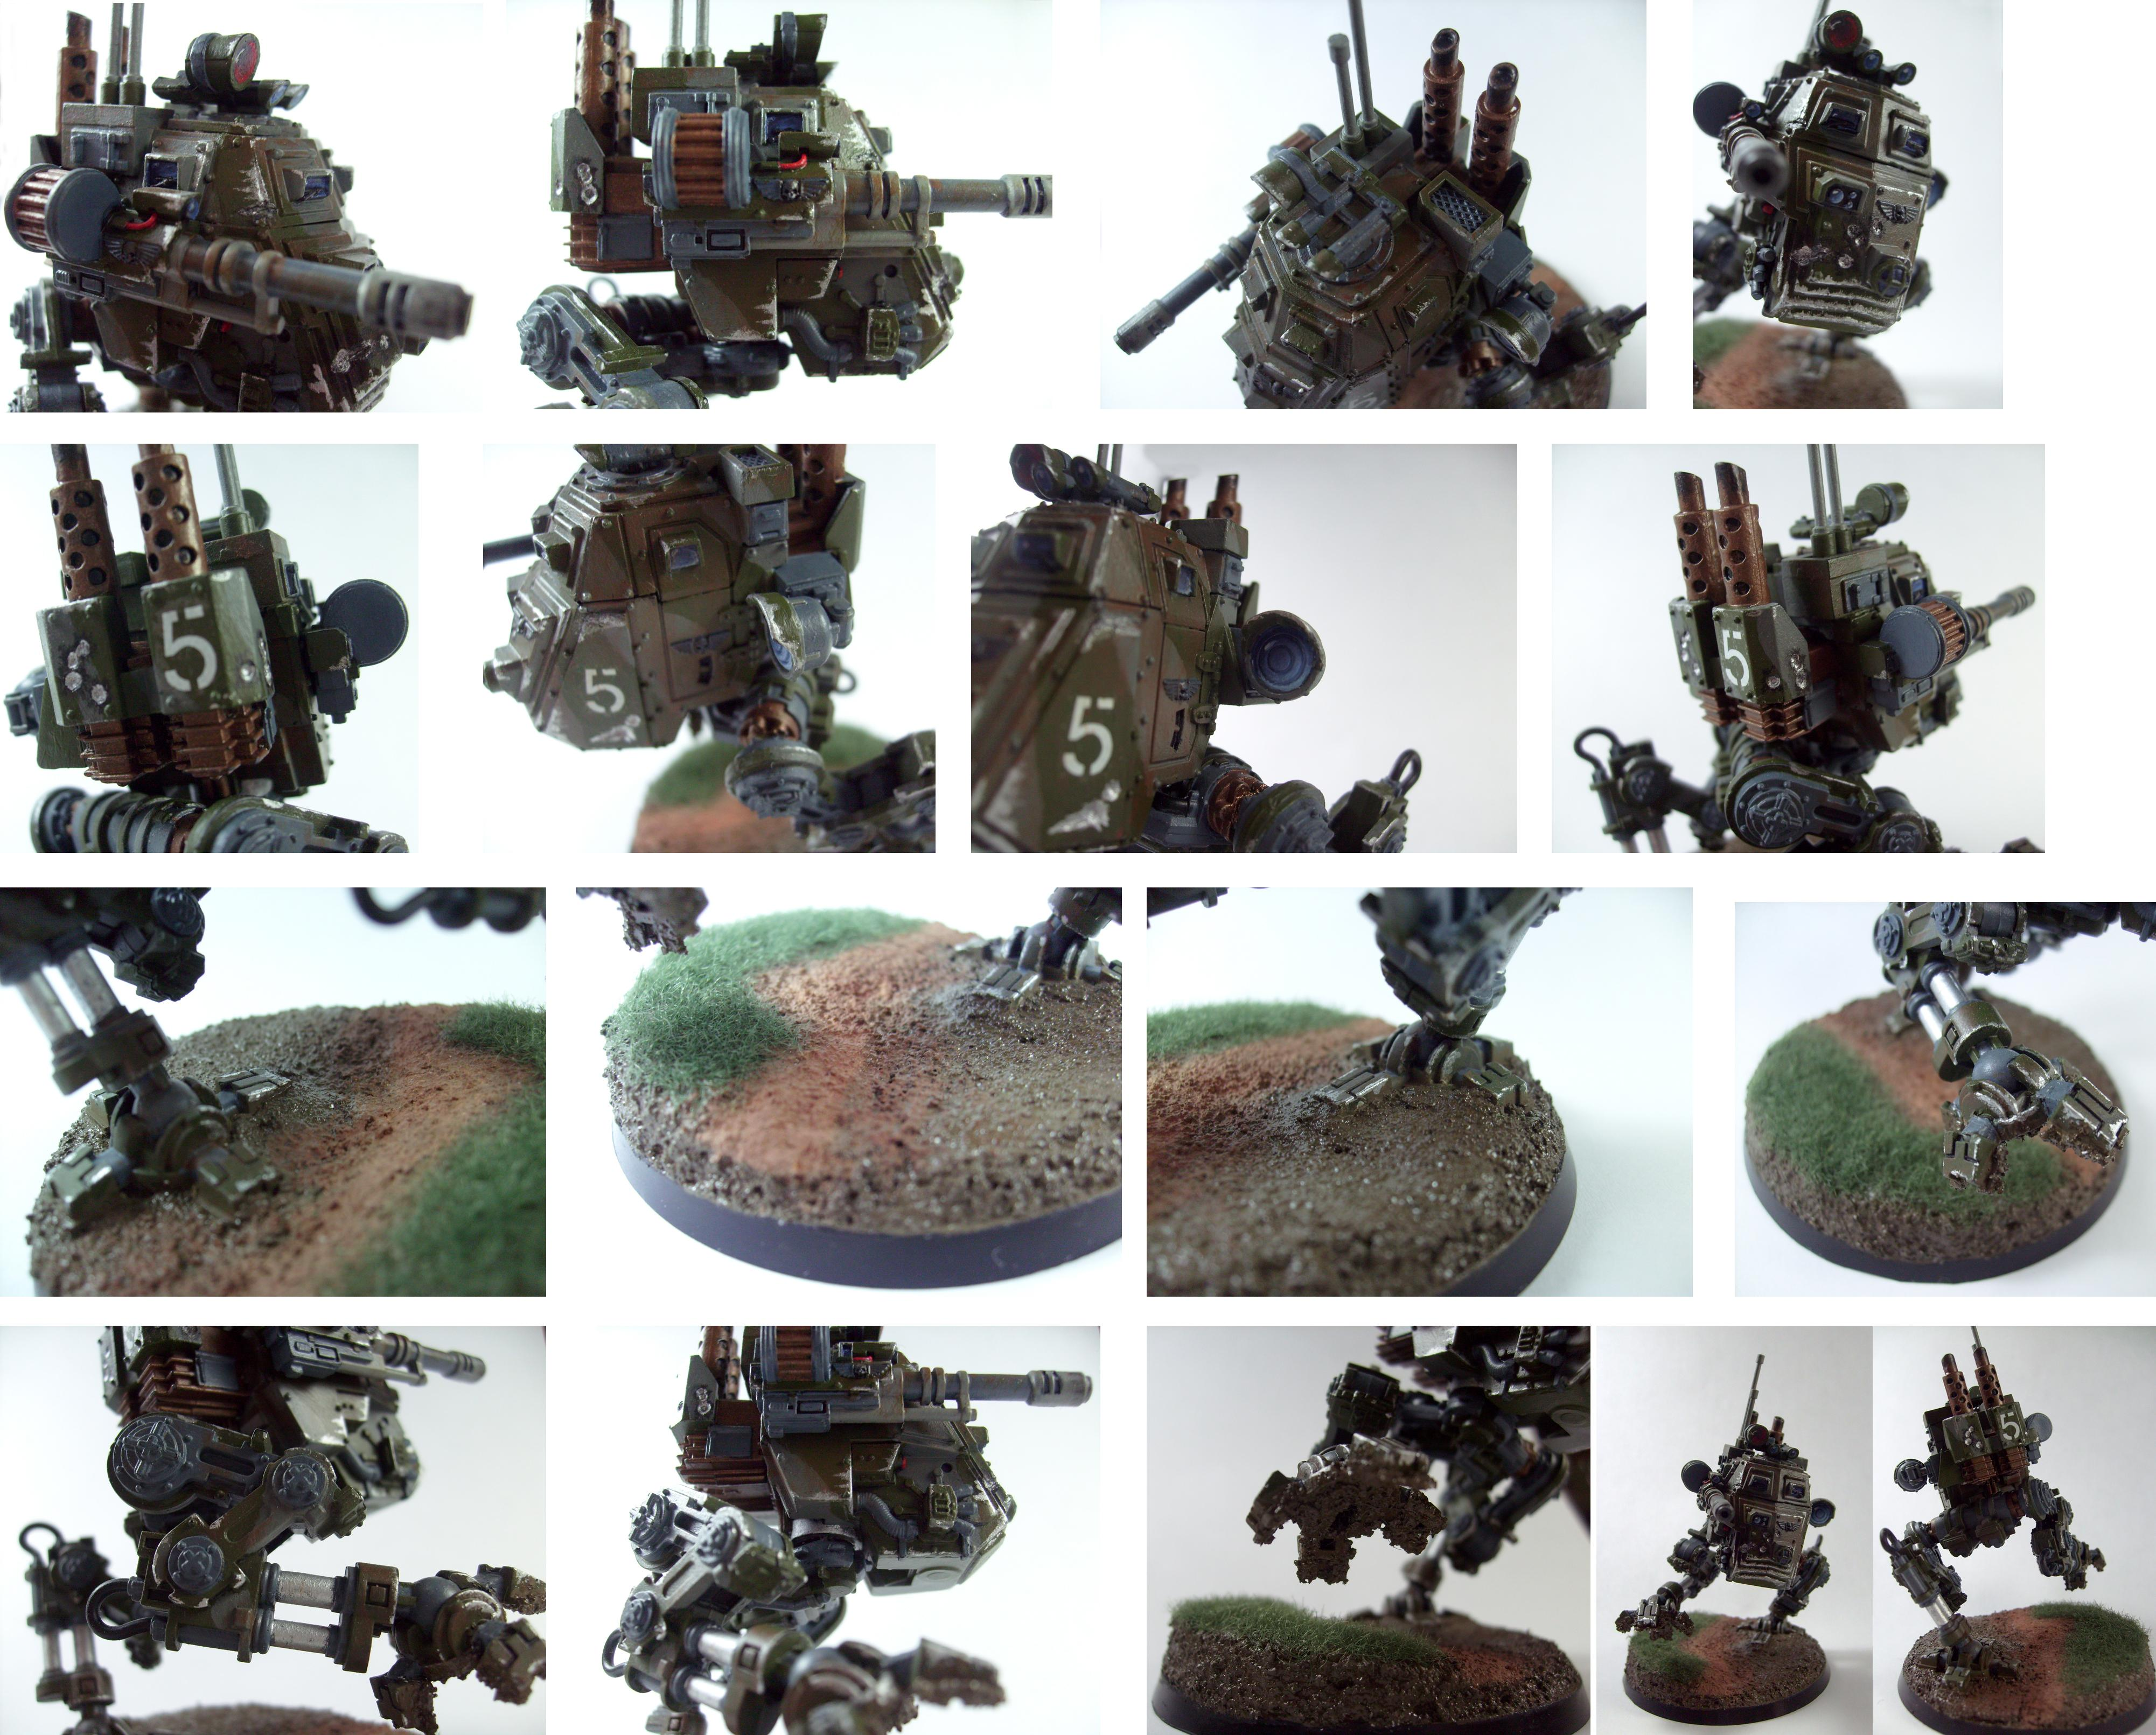 Base, Camouflage, Grass, Imperial Guard, Mud, Sentinel